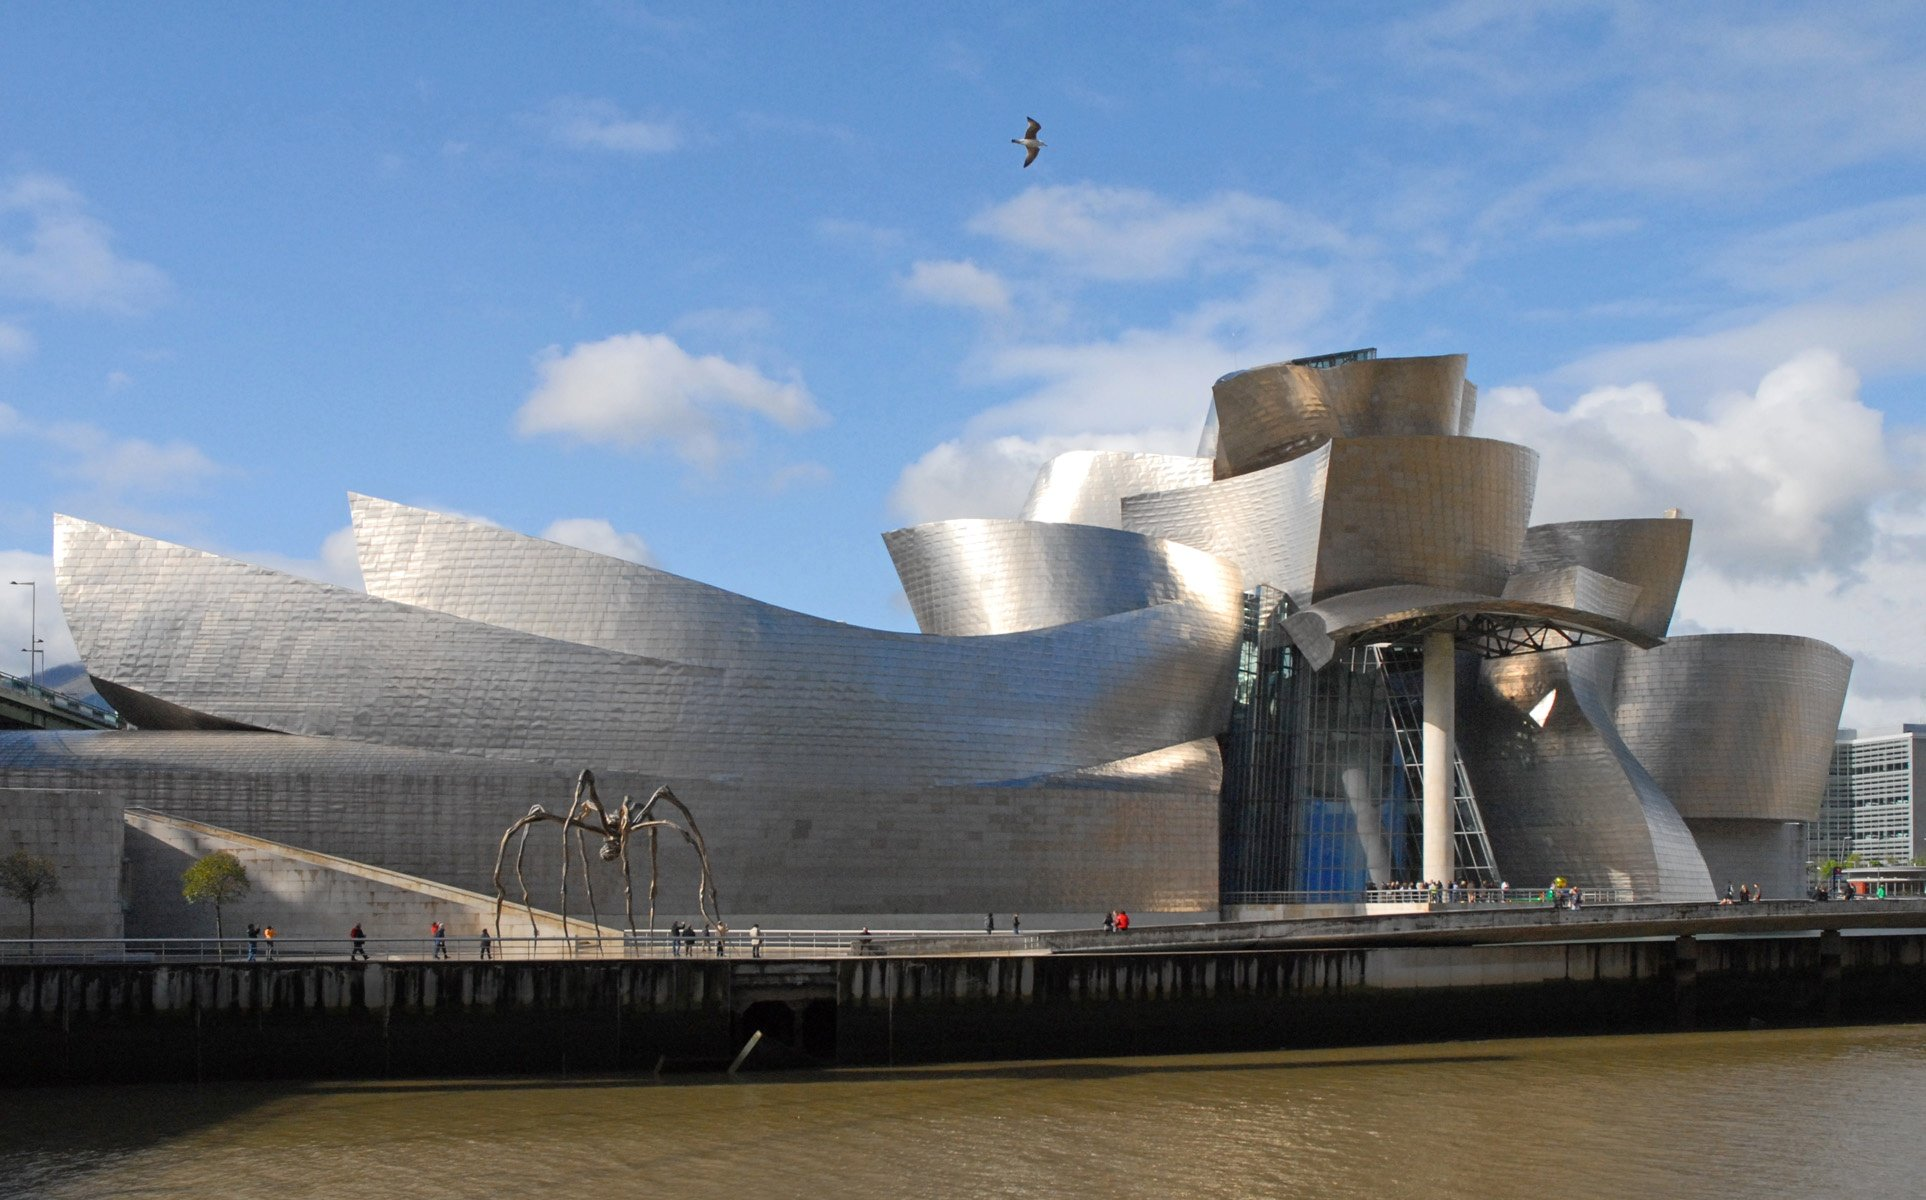 Le mus e guggenheim bilbao flickr photo sharing - Arquitectura pais vasco ...